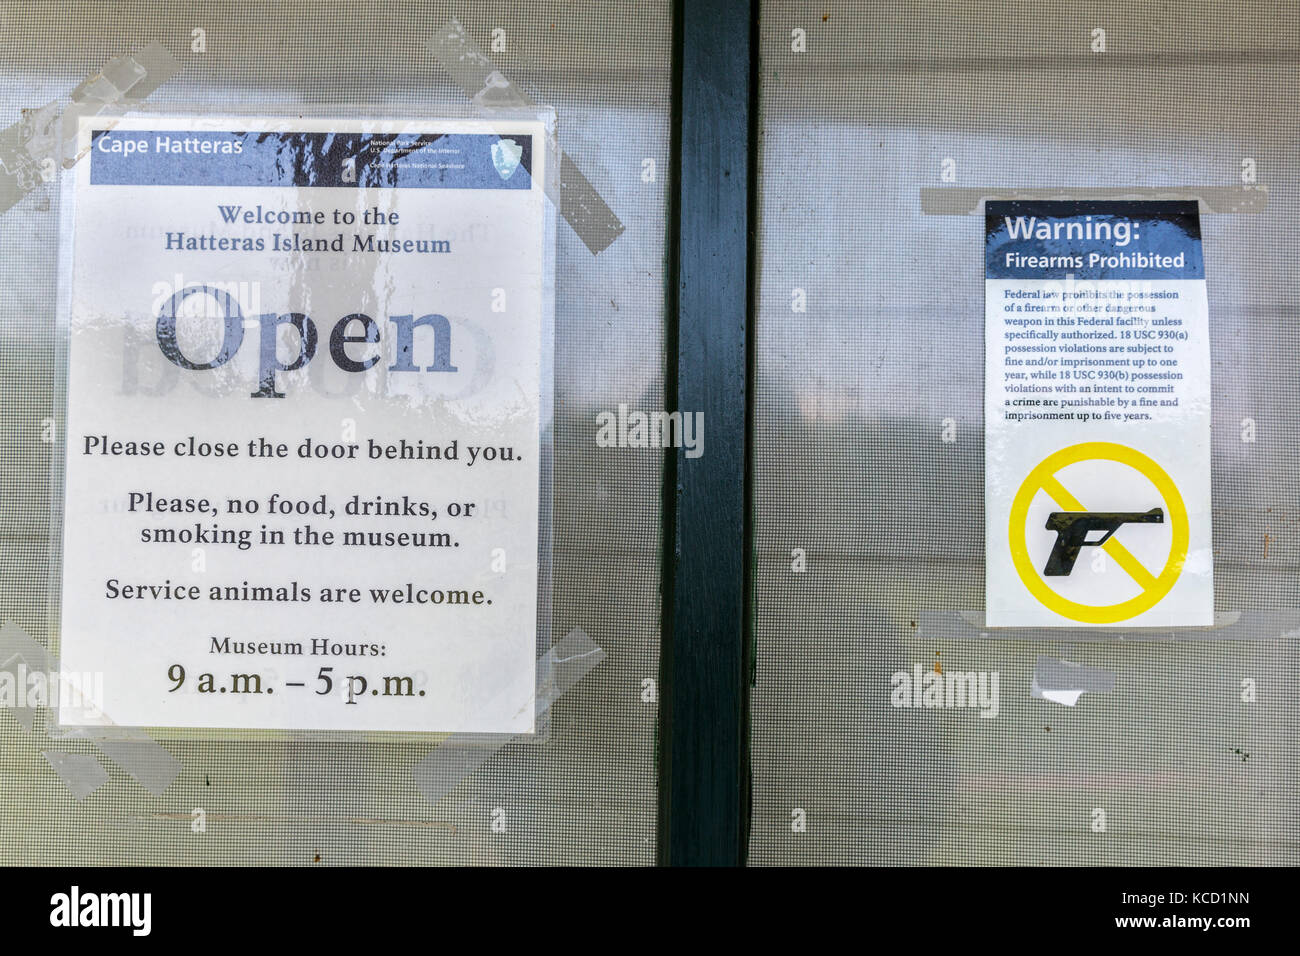 Cape Hatteras, Outer Banks, North Carolina, USA.  No Firearms Permitted inside the Cape Hatteras Museum. - Stock Image